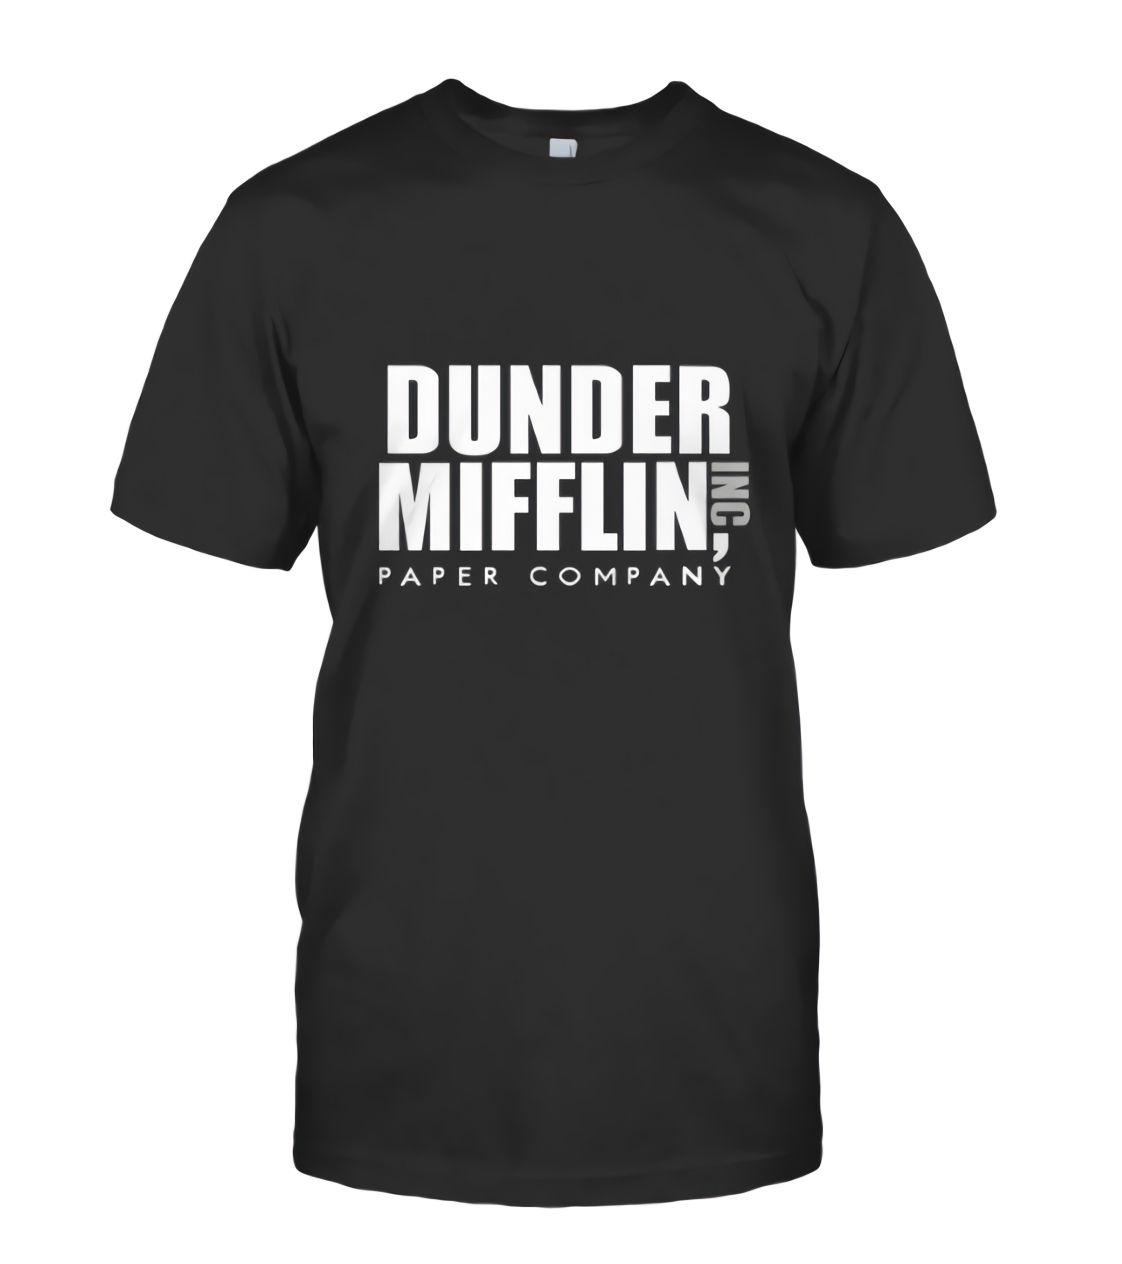 b74e0d091357c New Dunder Mifflin The Office Sweater Comedy Funny Men s Black T ...